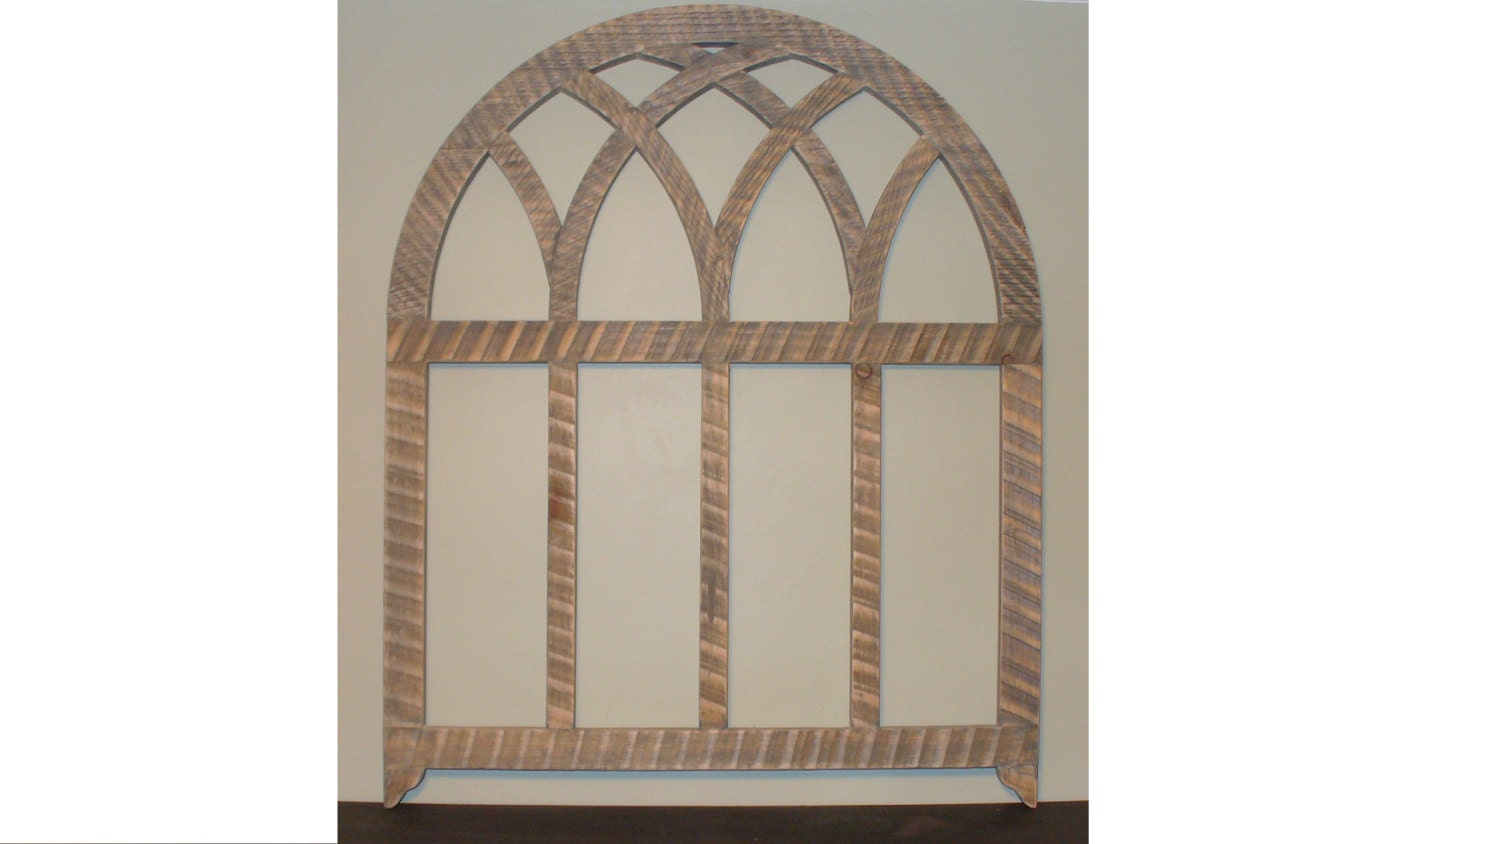 Rustic Weathered Wood Arched Window Frame By